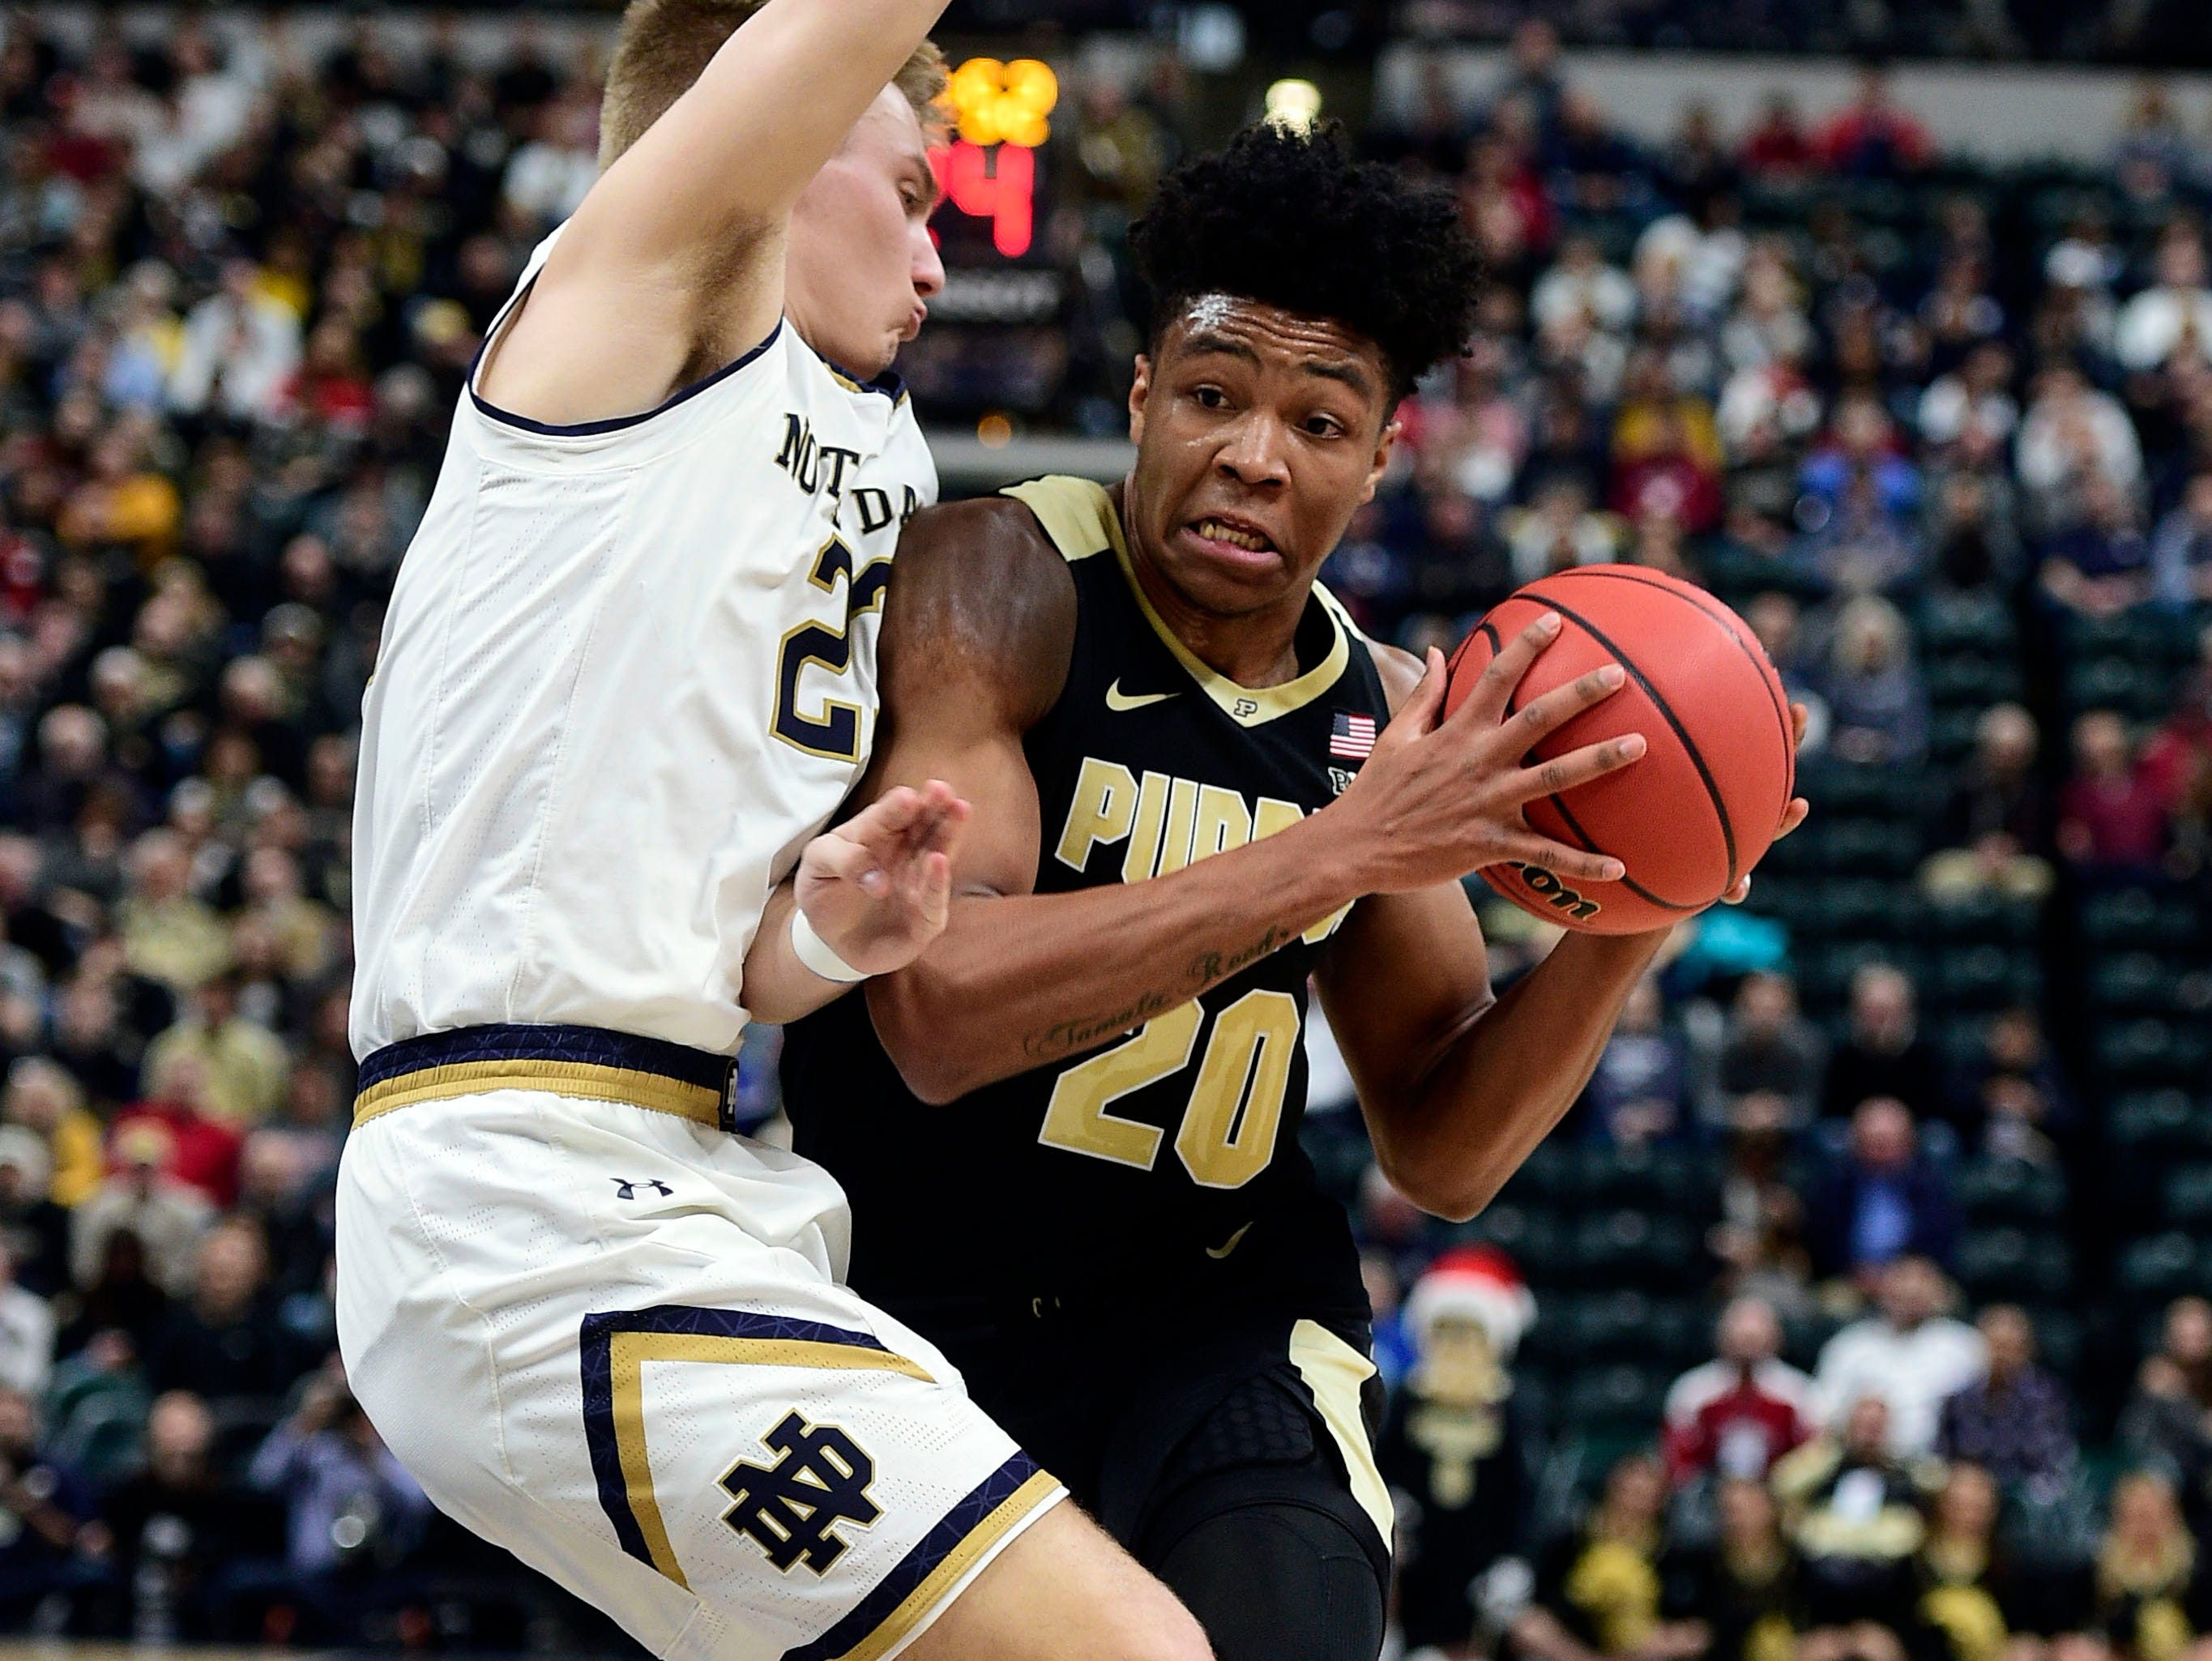 Dec 15, 2018; Indianapolis, IN, USA; Purdue Boilermaker guard Nojel Eastern (20) drives past Notre Dame Fighting Irish guard Liam Nelligan (25) in the first half at Bankers Life Fieldhouse. Mandatory Credit: Thomas J. Russo-USA TODAY Sports